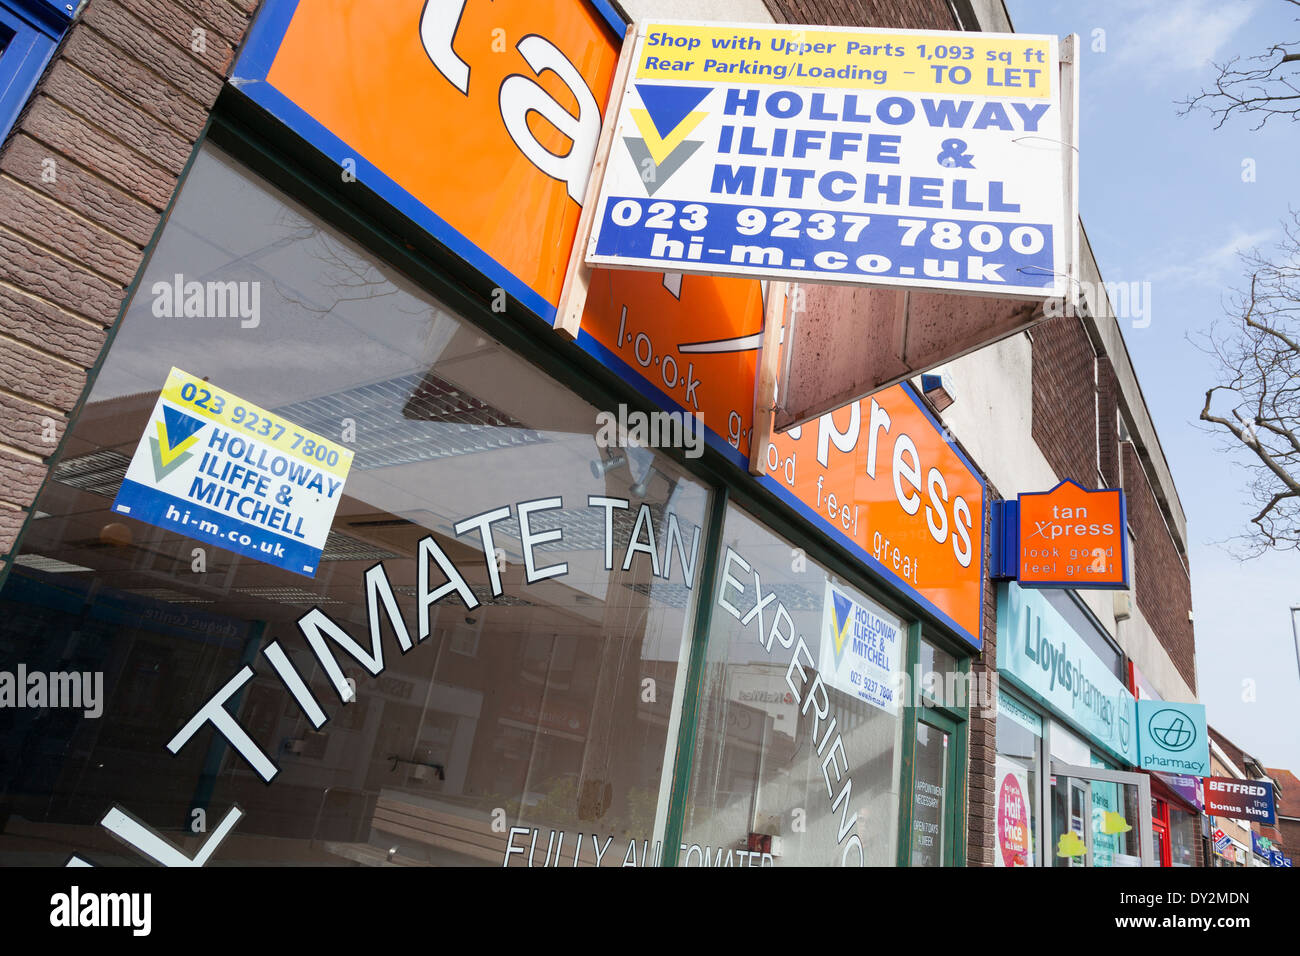 Tanning shop closed down with premises to let sign. Stock Photo